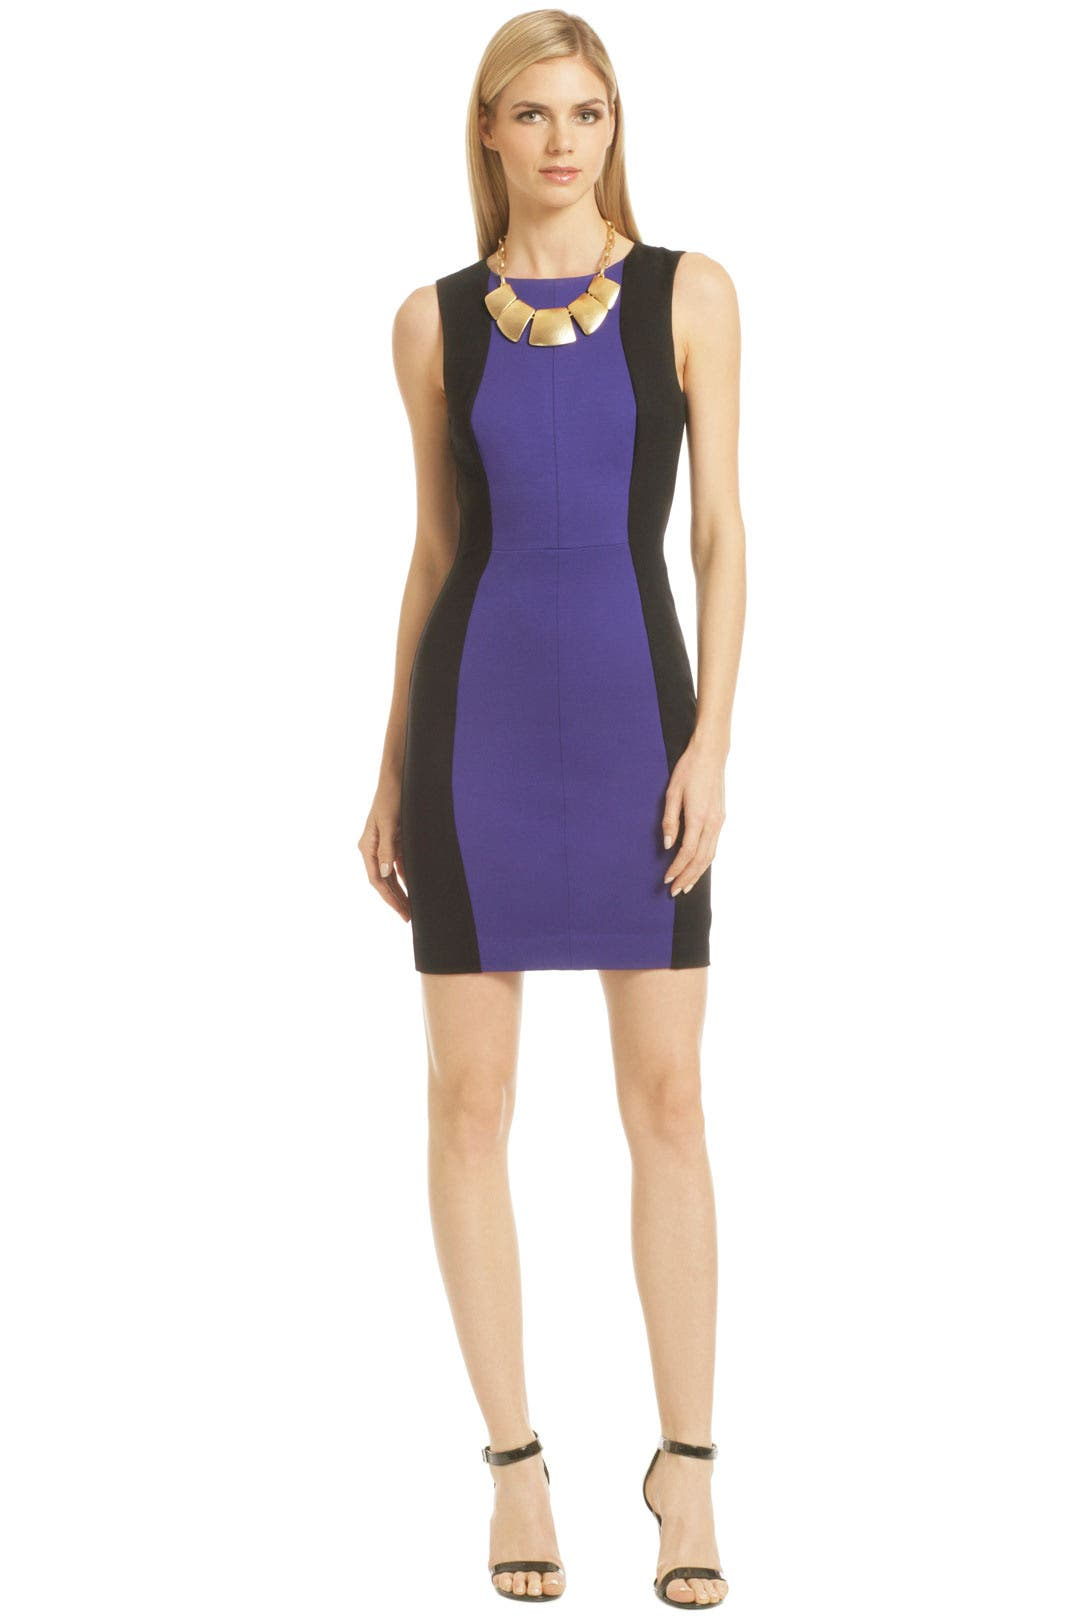 Dress to Be Bold Sheath by Trina Turk